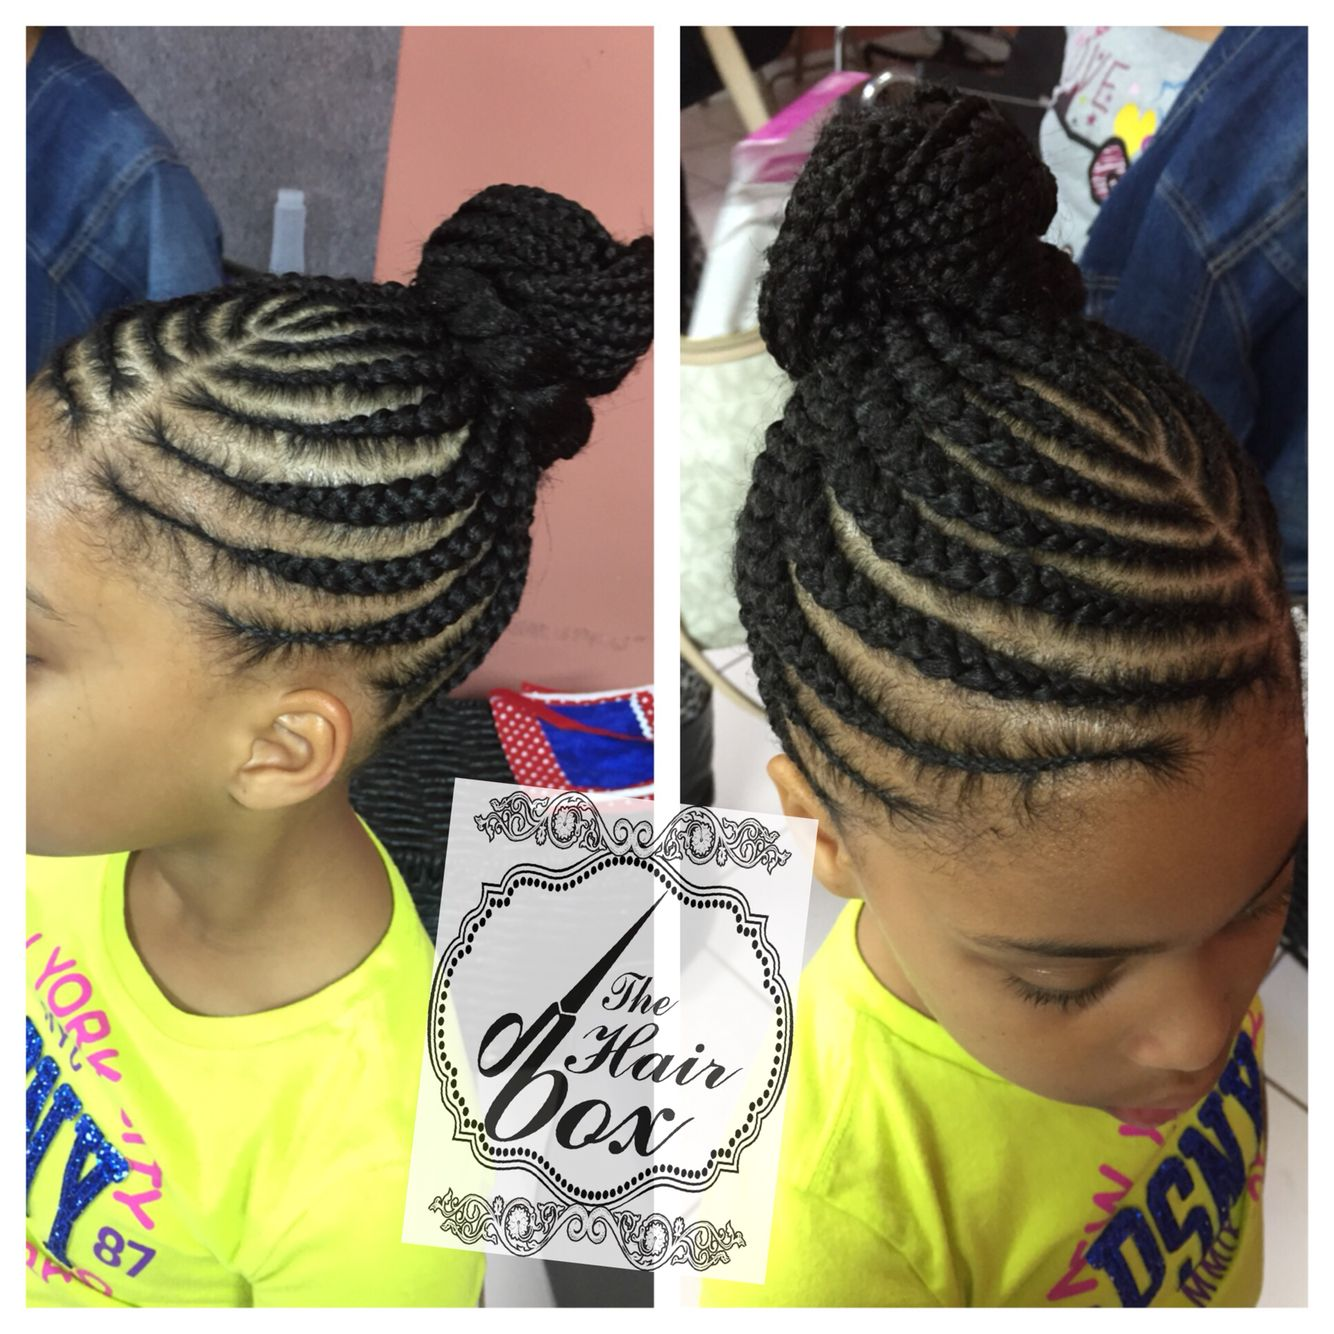 black kids hair braiding styles braids braids my hair cornrow and hair 3927 | 9a61784c6c17b89e9dc5cd628662ea08